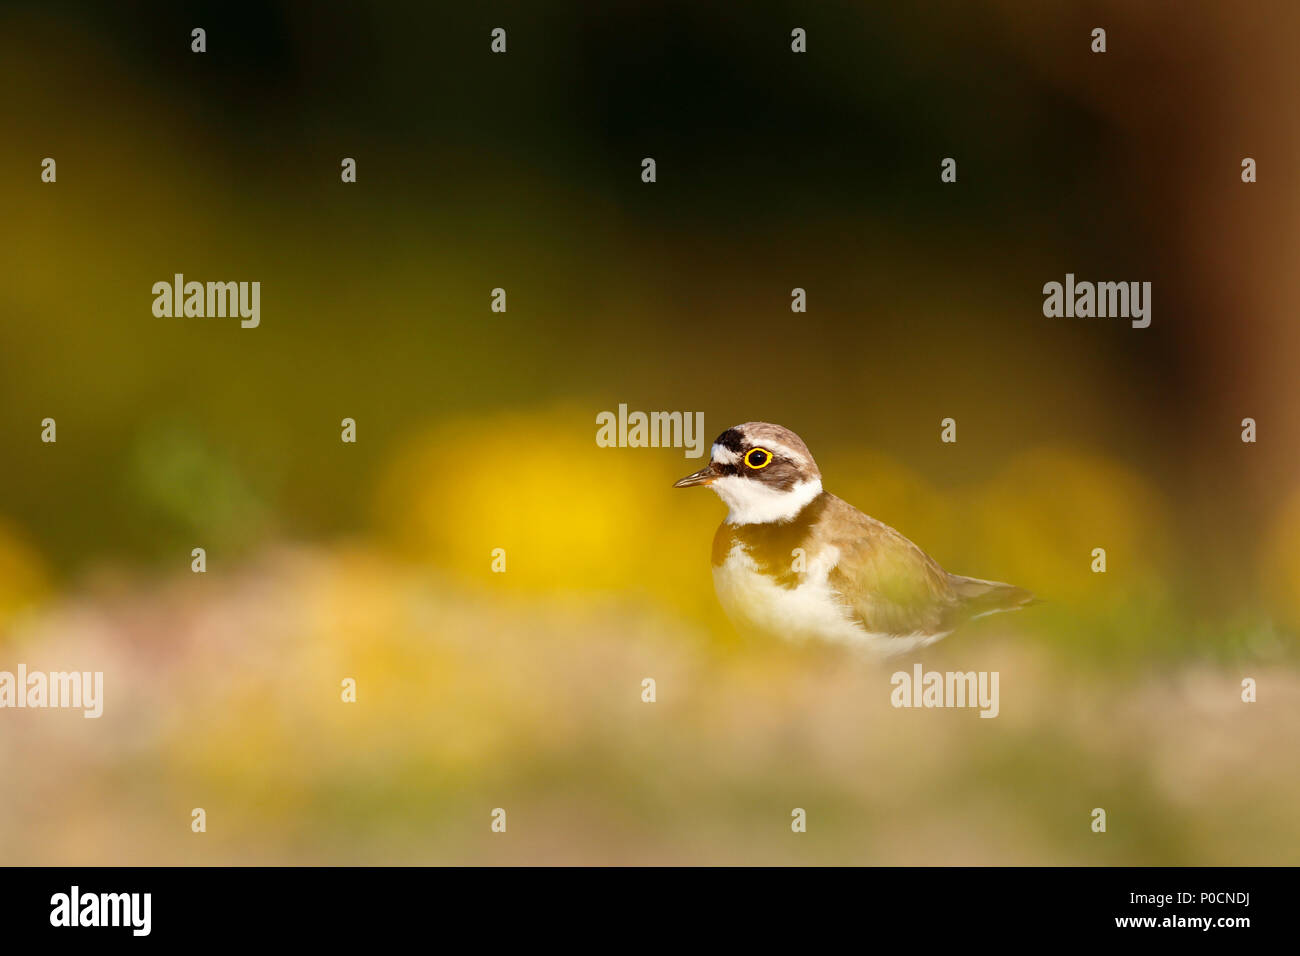 Little ringed plover (Charadrius dubius), Middle Elbe Biosphere Reserve, Saxony-Anhalt, Germany - Stock Image